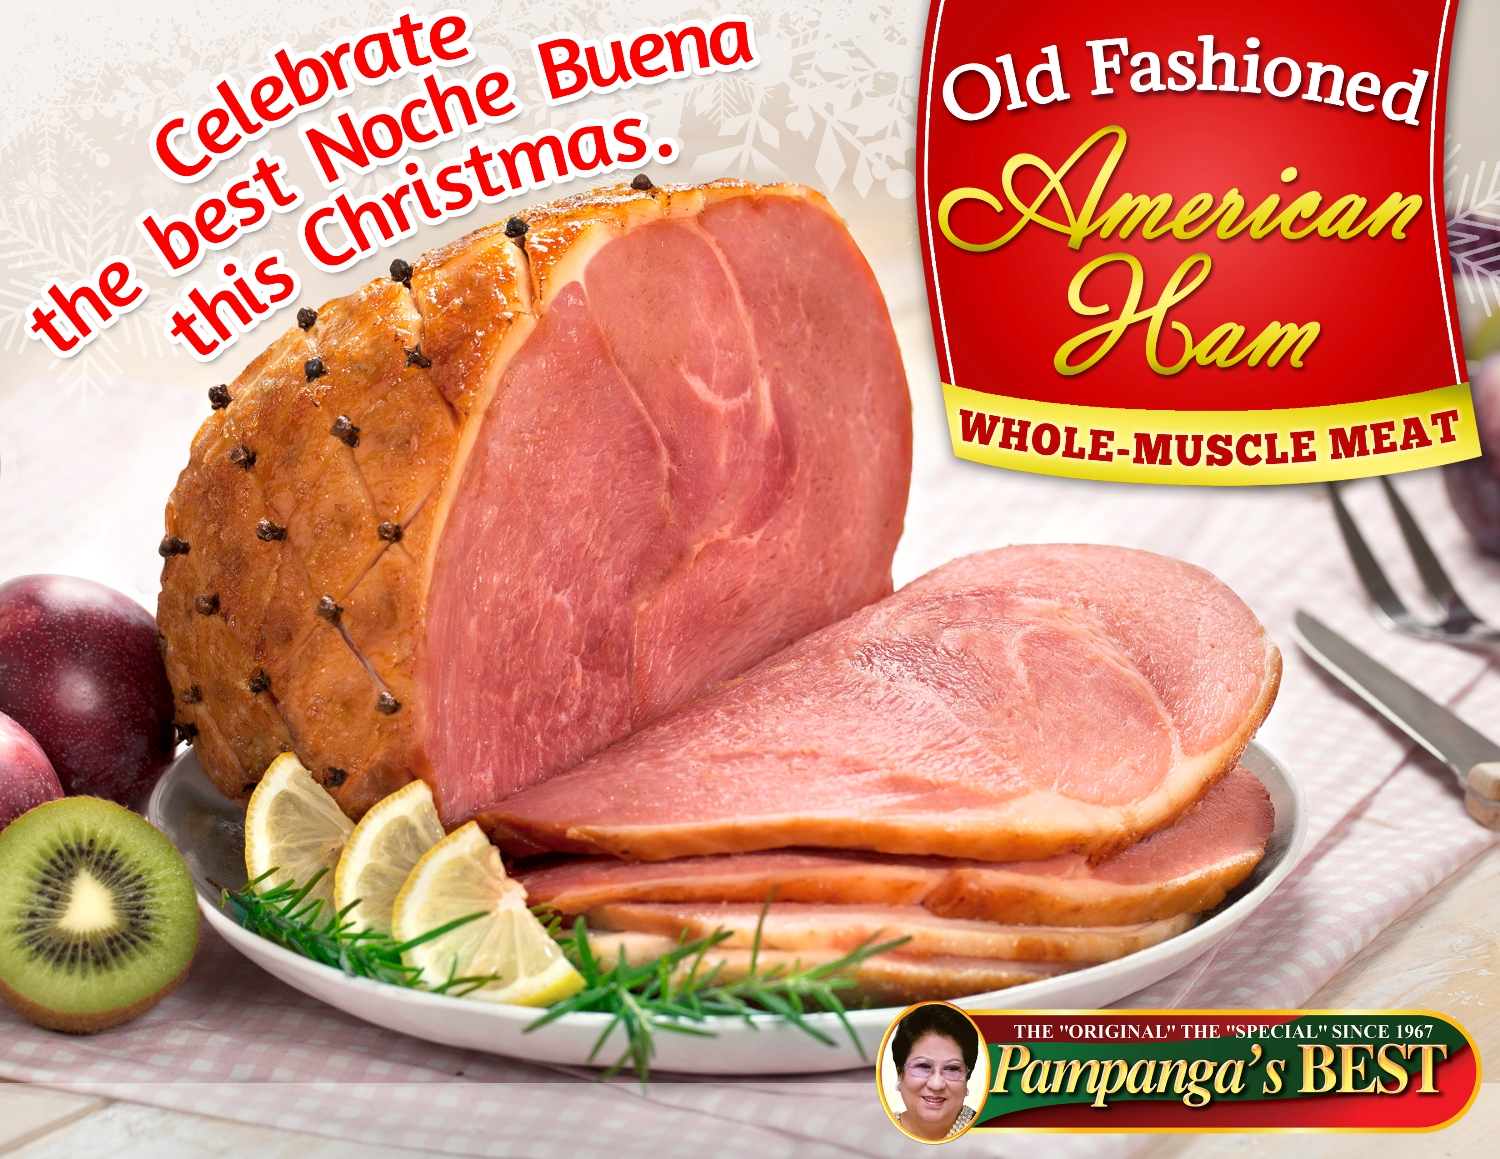 Old Fashioned American Ham